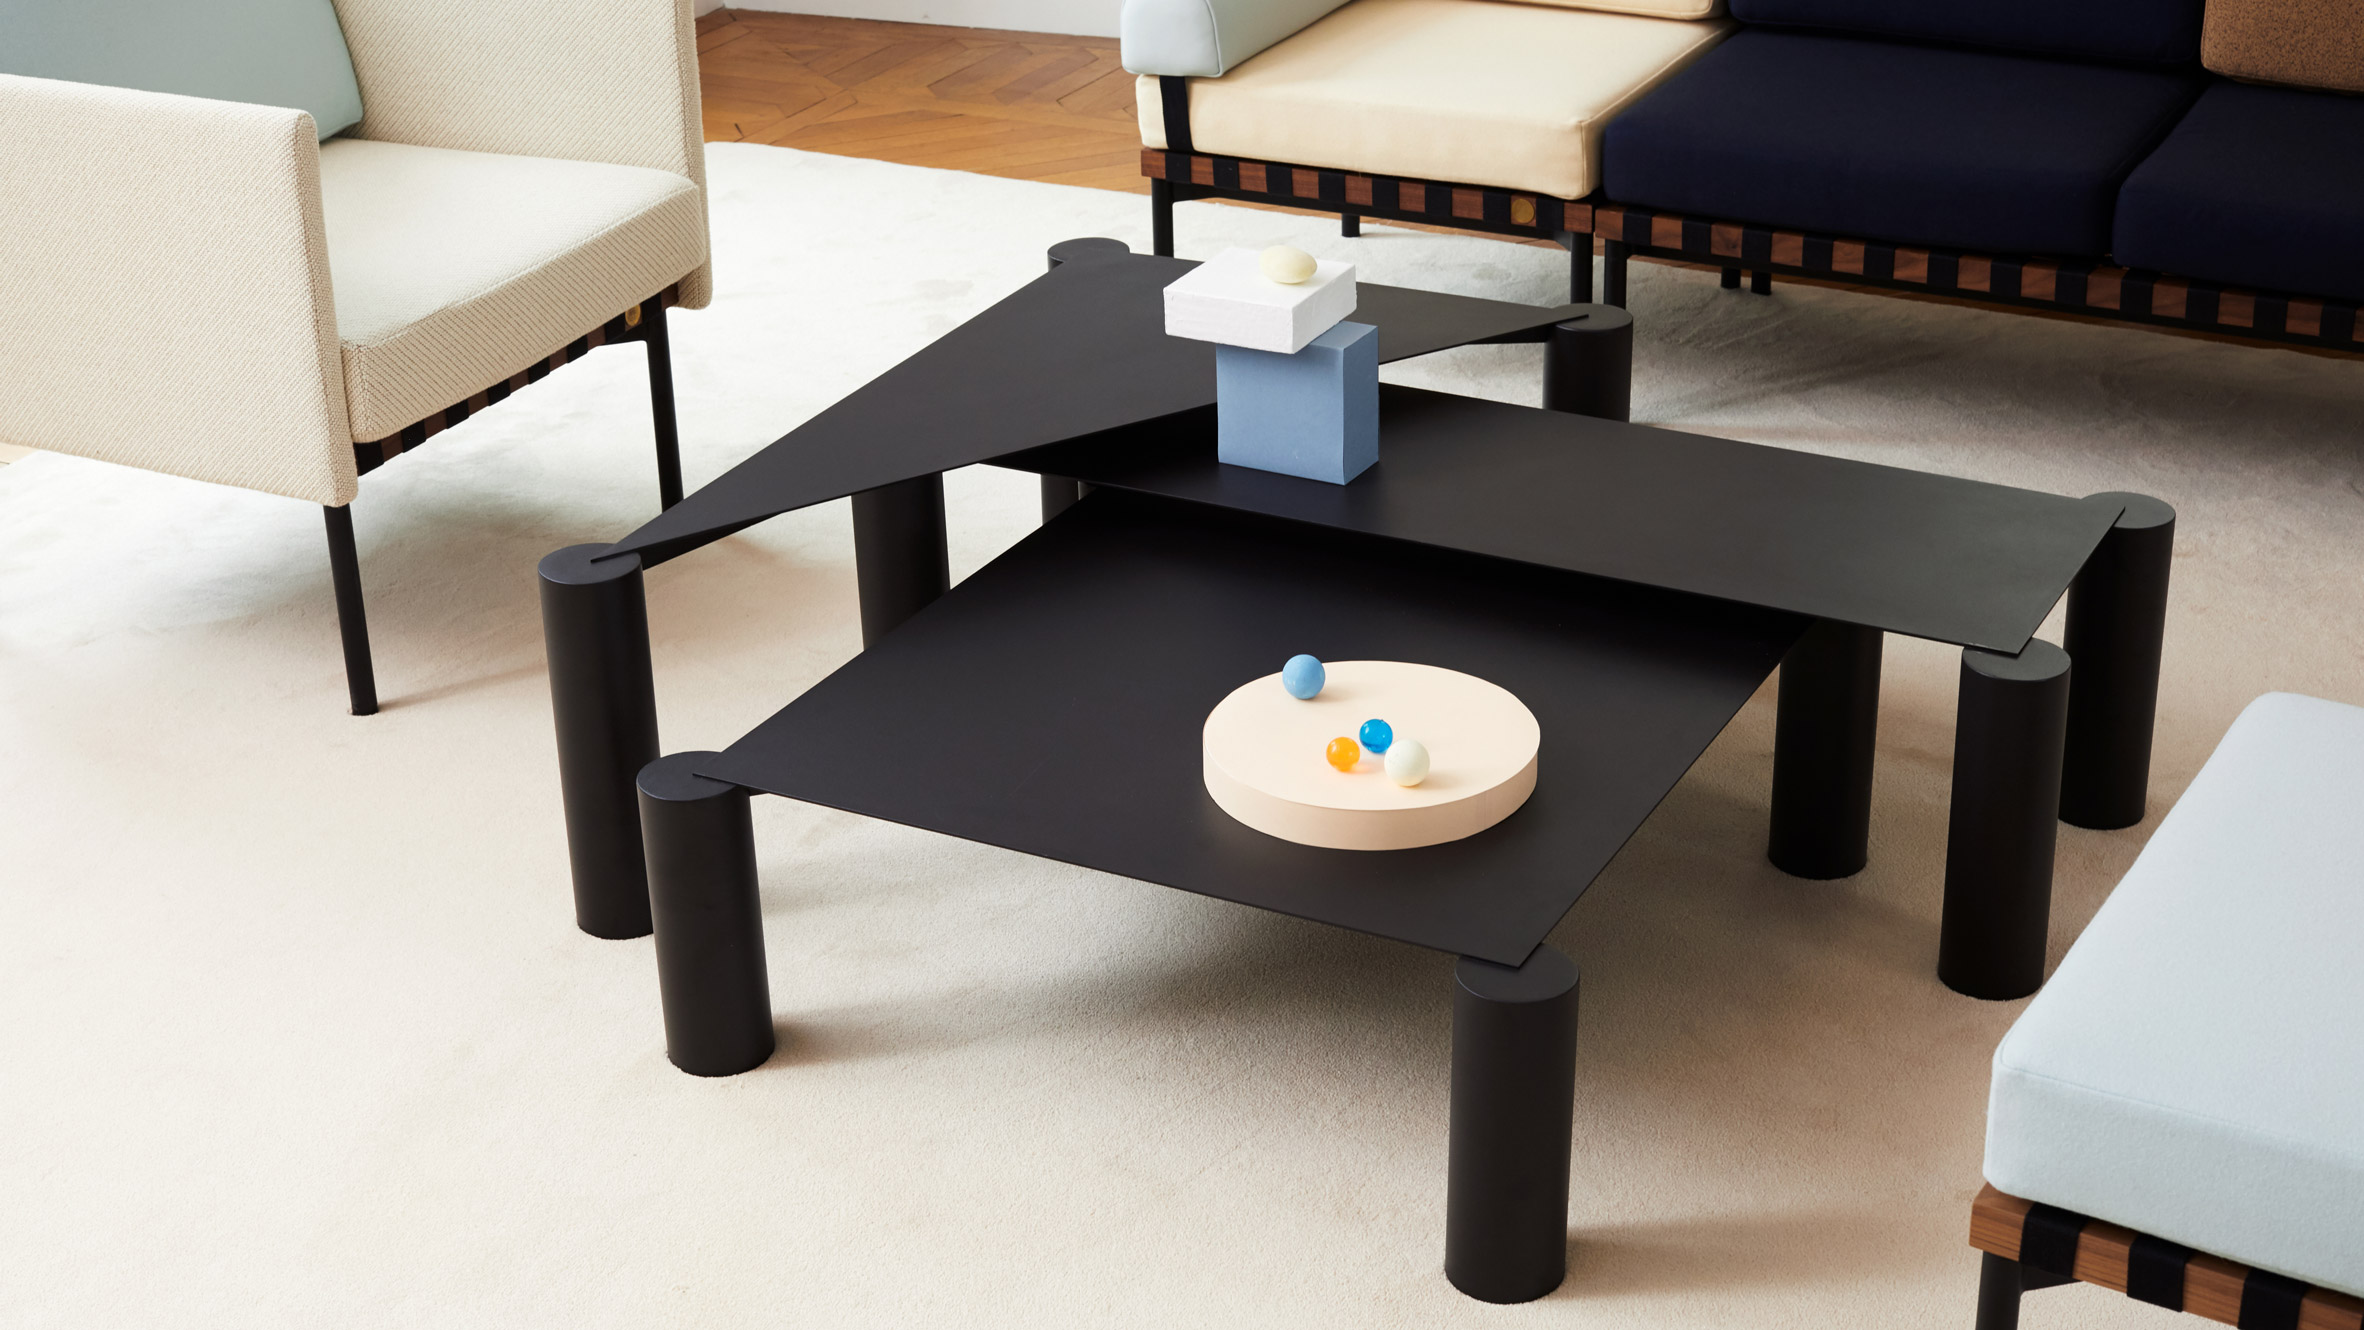 nesting coffee tables with bulky legs